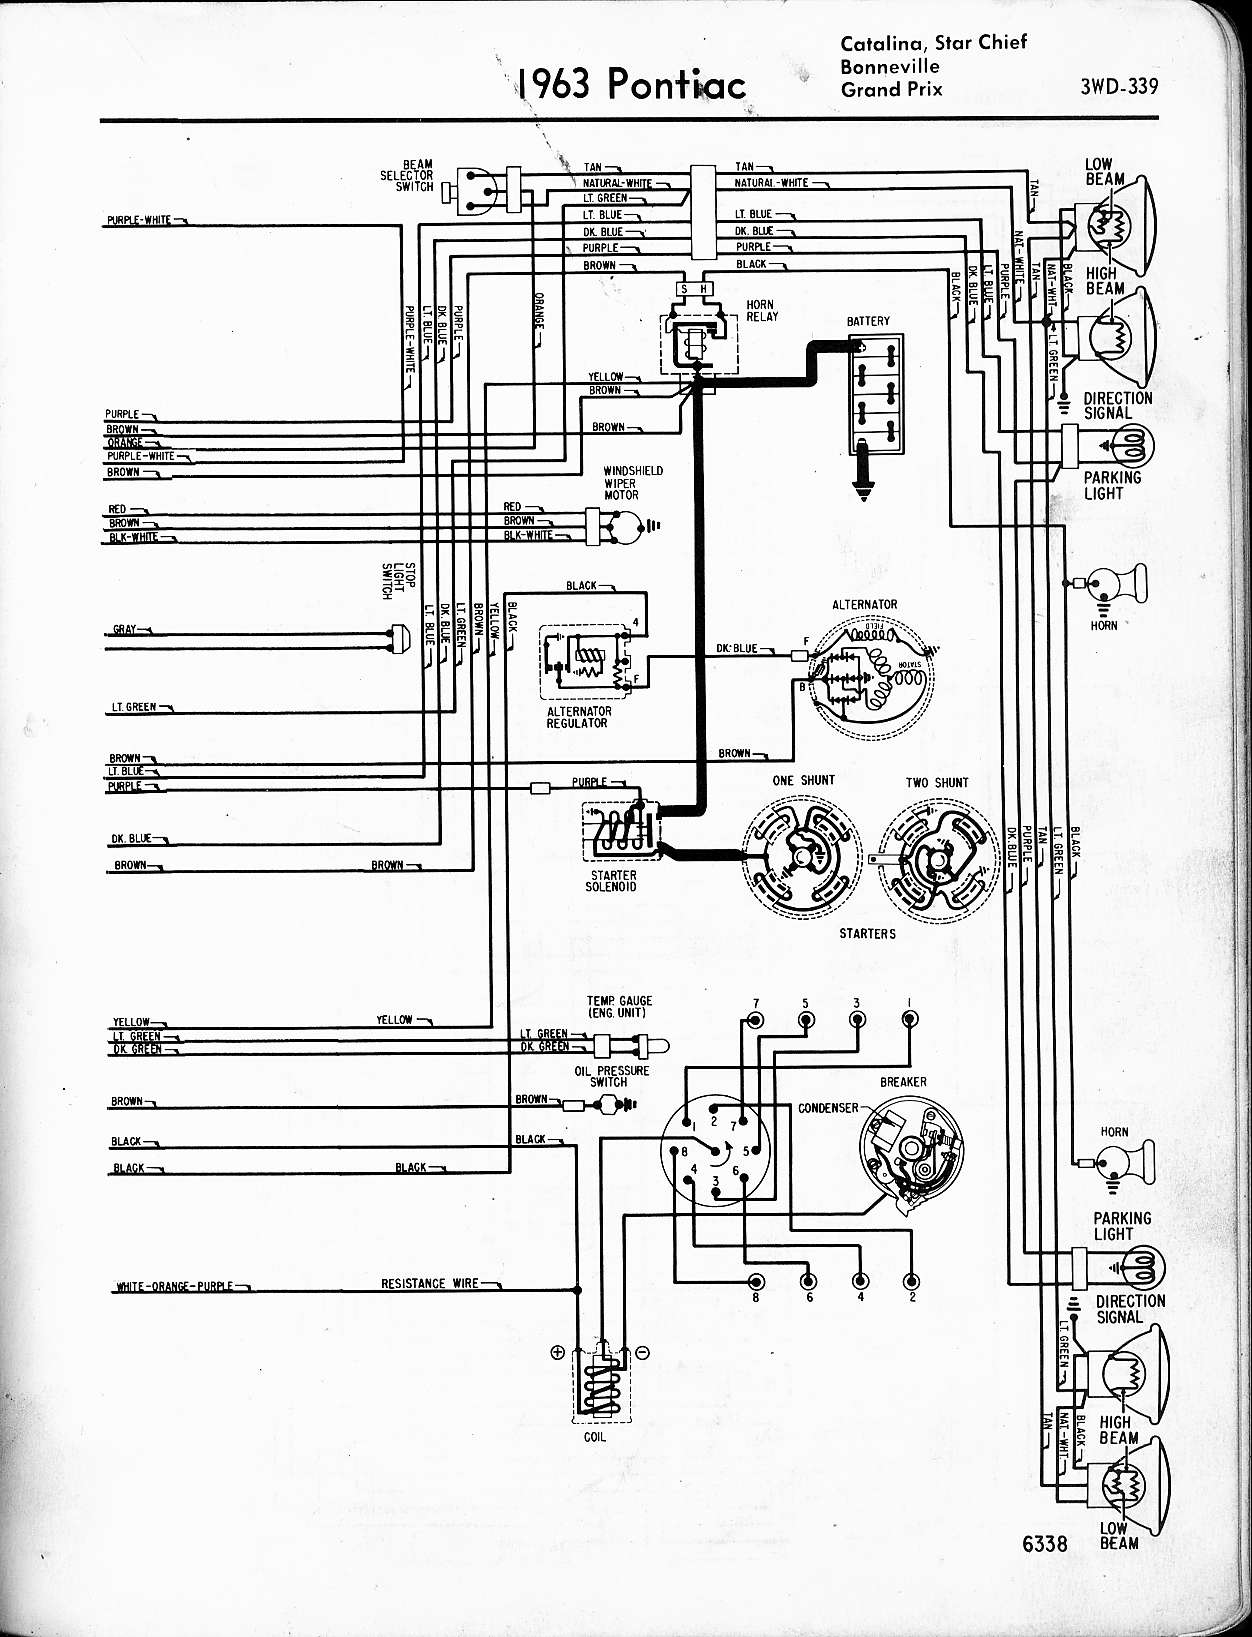 f62698 2003 pontiac grand prix radio wiring diagram wiring 2003 chrysler pt cruiser radio wiring diagram 2003 pontiac bonneville radio wiring diagram #12